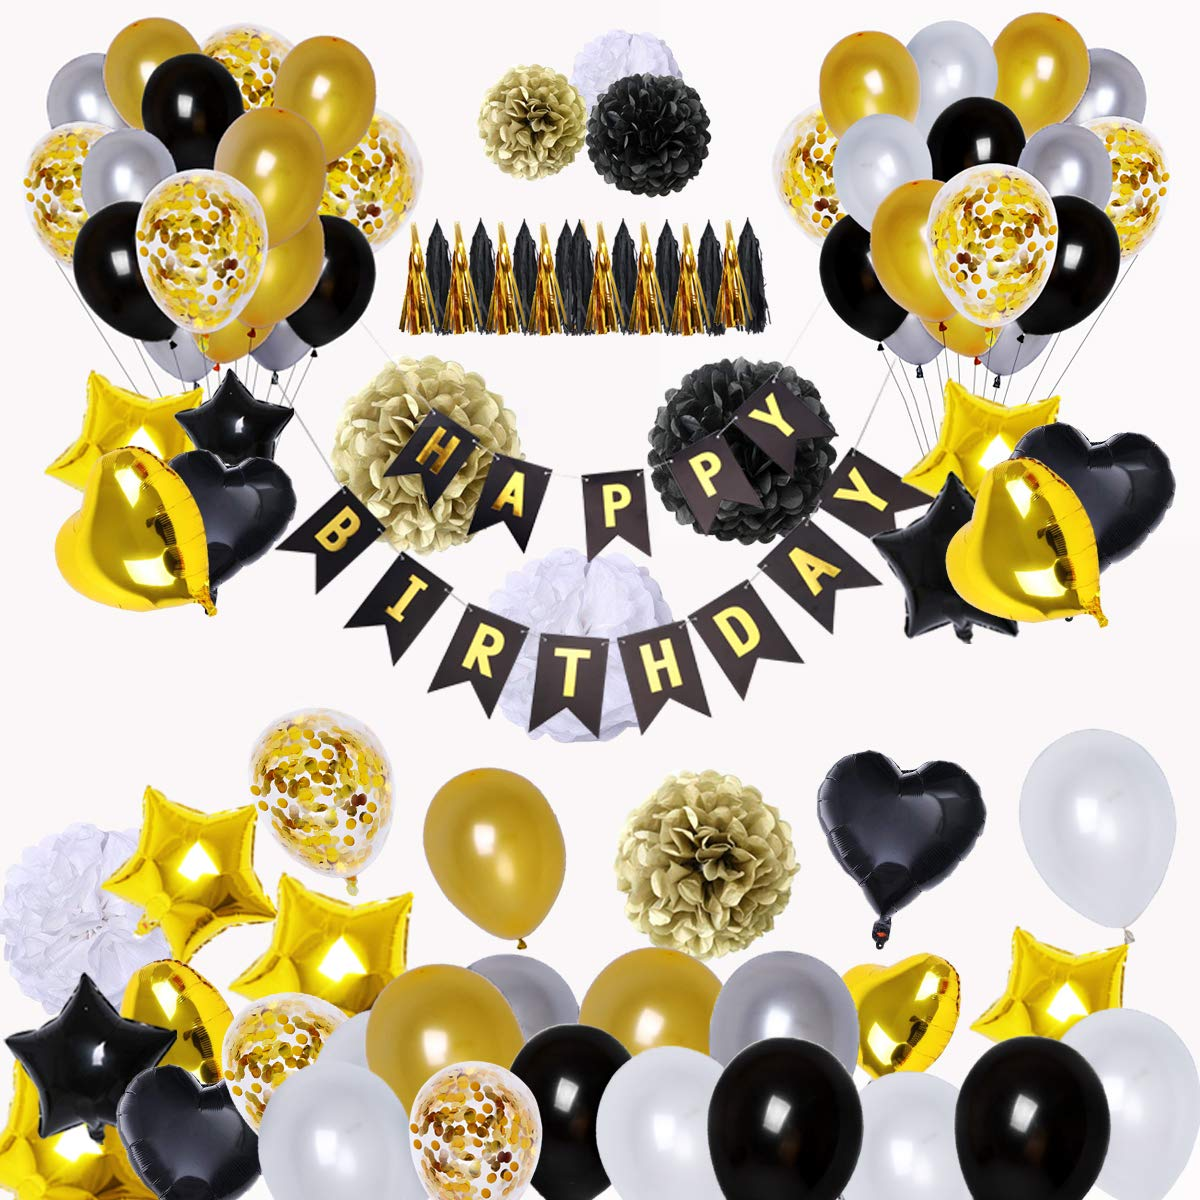 Black White And Gold 50Th Birthday Party Decorations from m.media-amazon.com